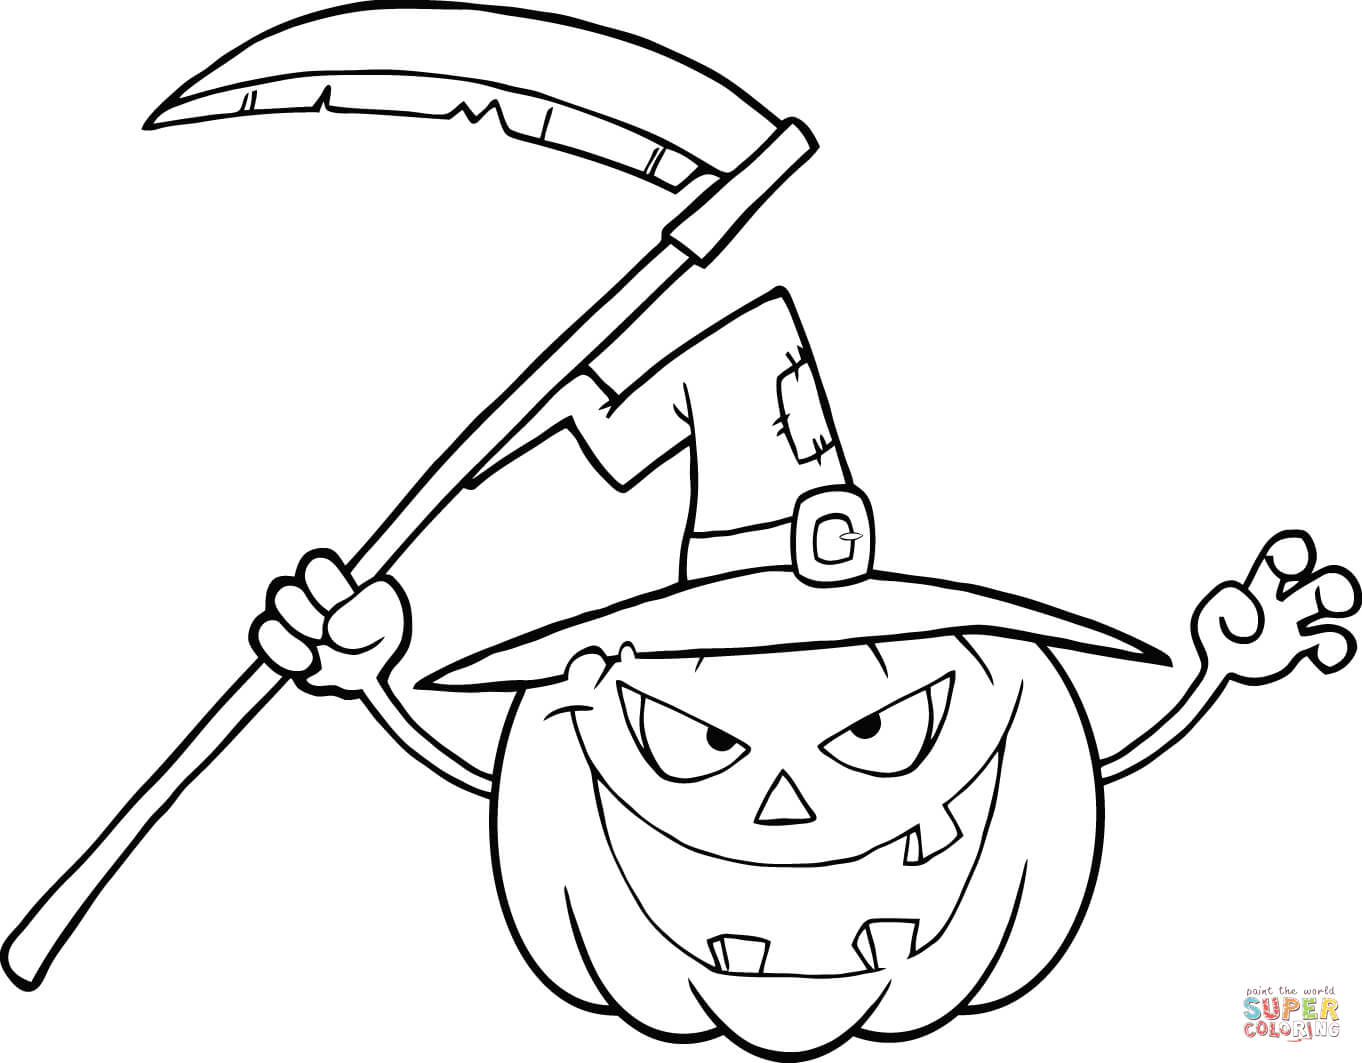 Halloween Pumpkin Coloring Pages Printables Scary Halloween Pumpkin With A Witch Hat And Scythe Coloring Page